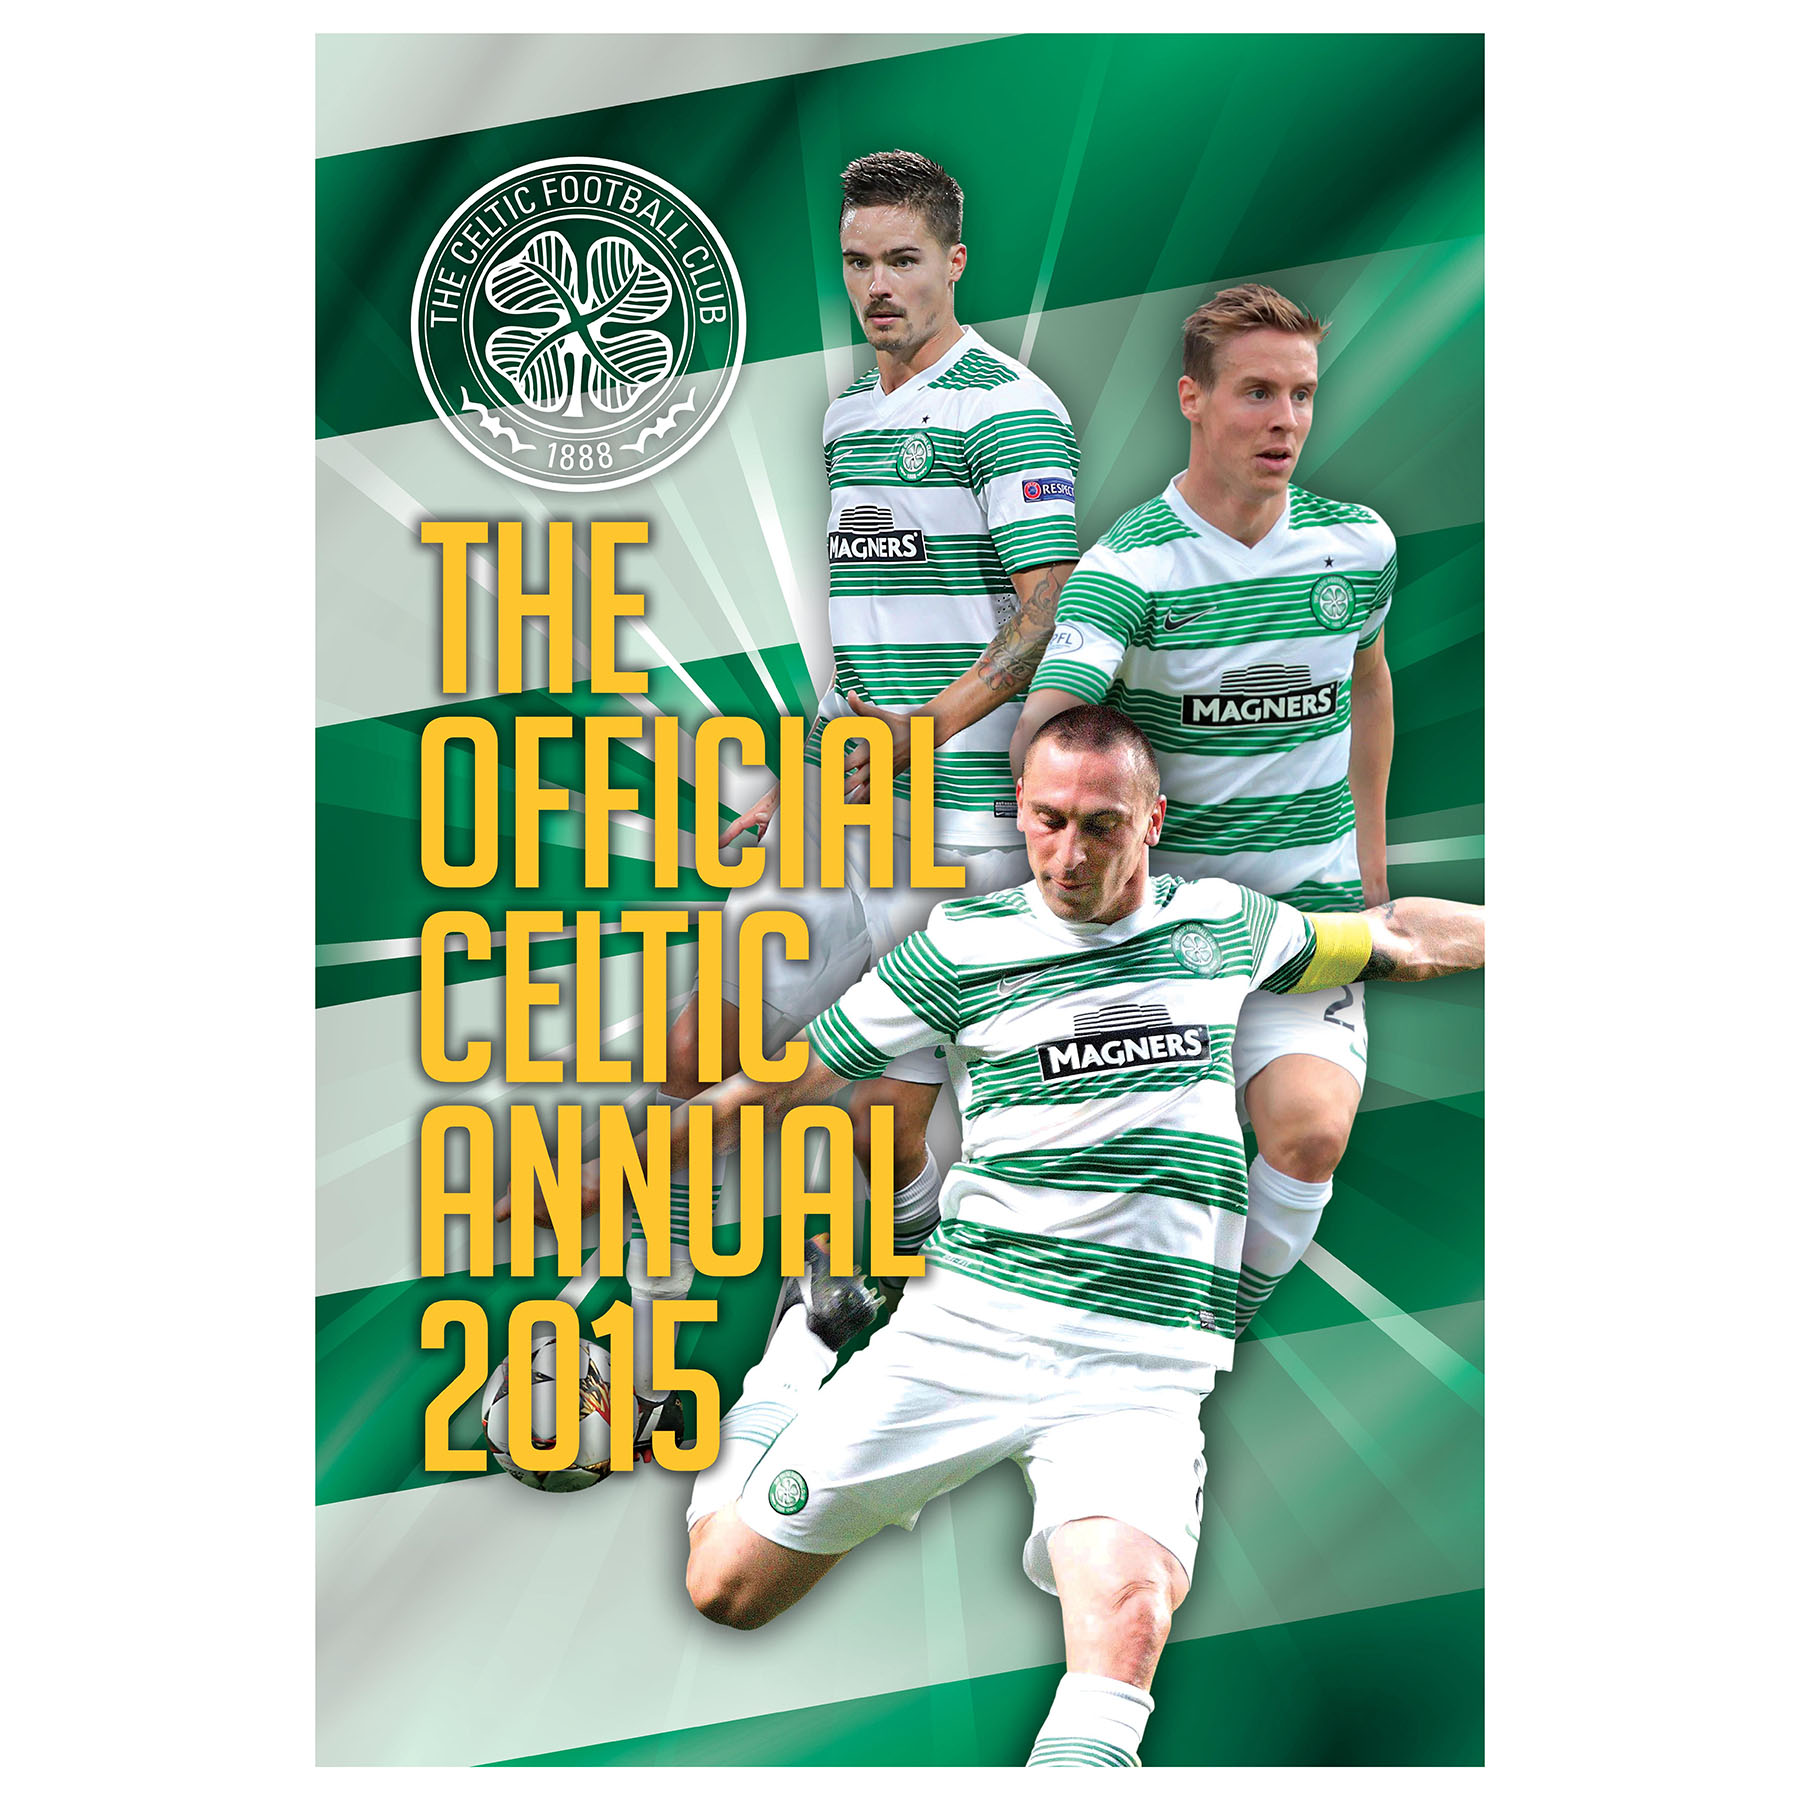 Celtic Official 2015 Annual